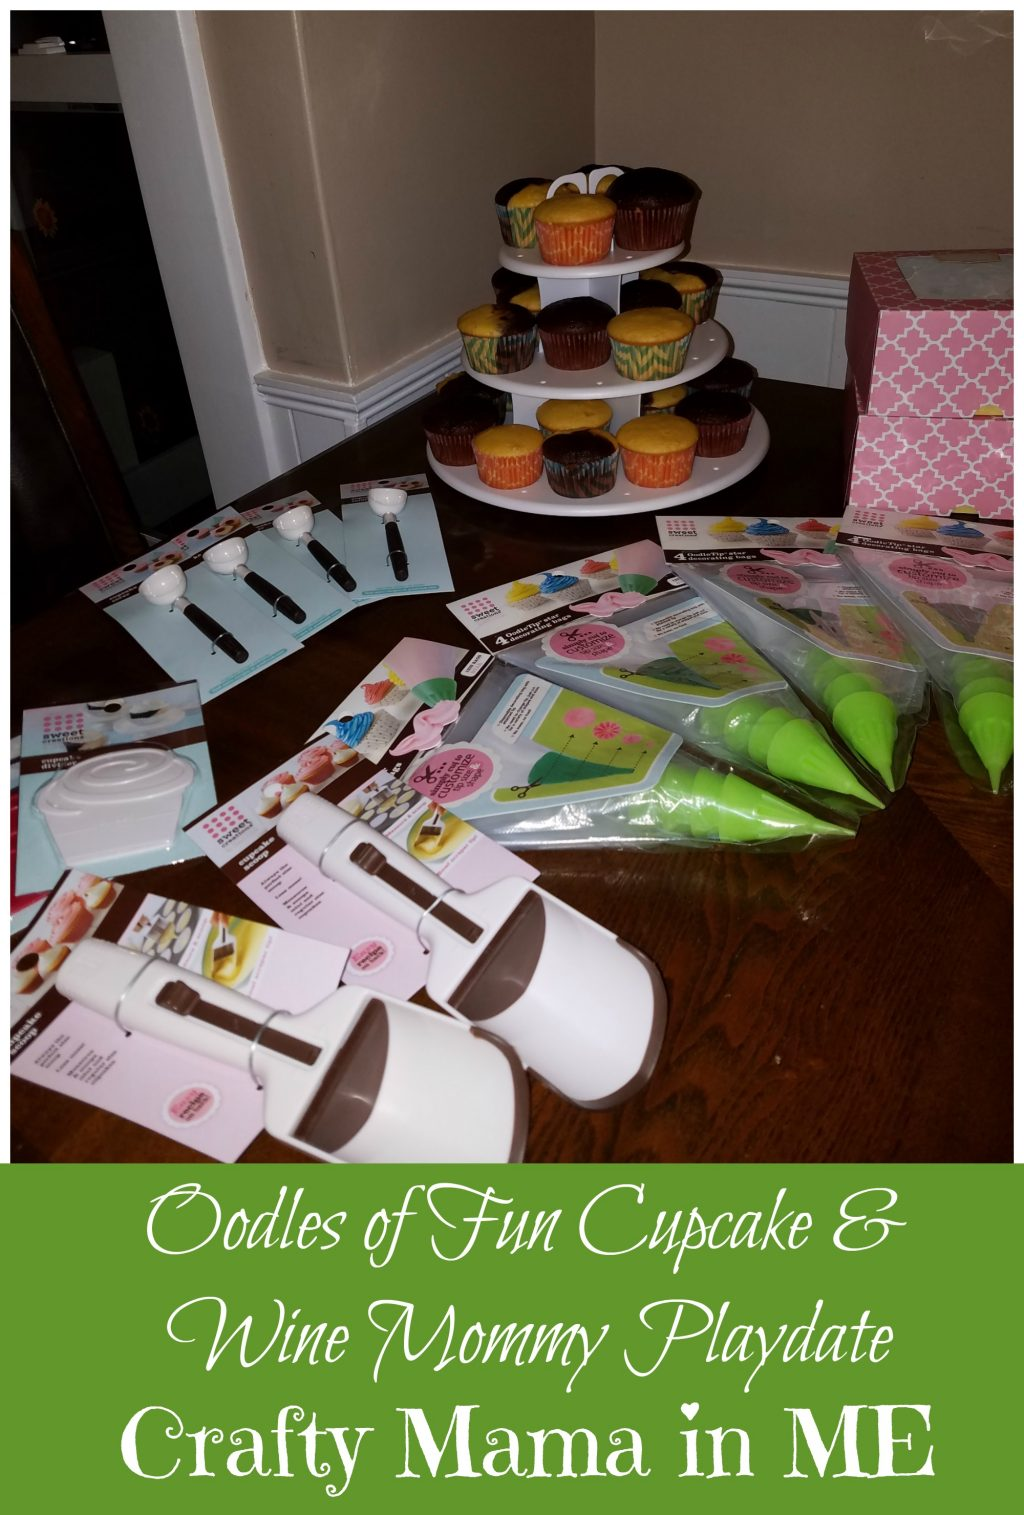 Oodles of Fun Cupcake & Wine Mommy Playdate